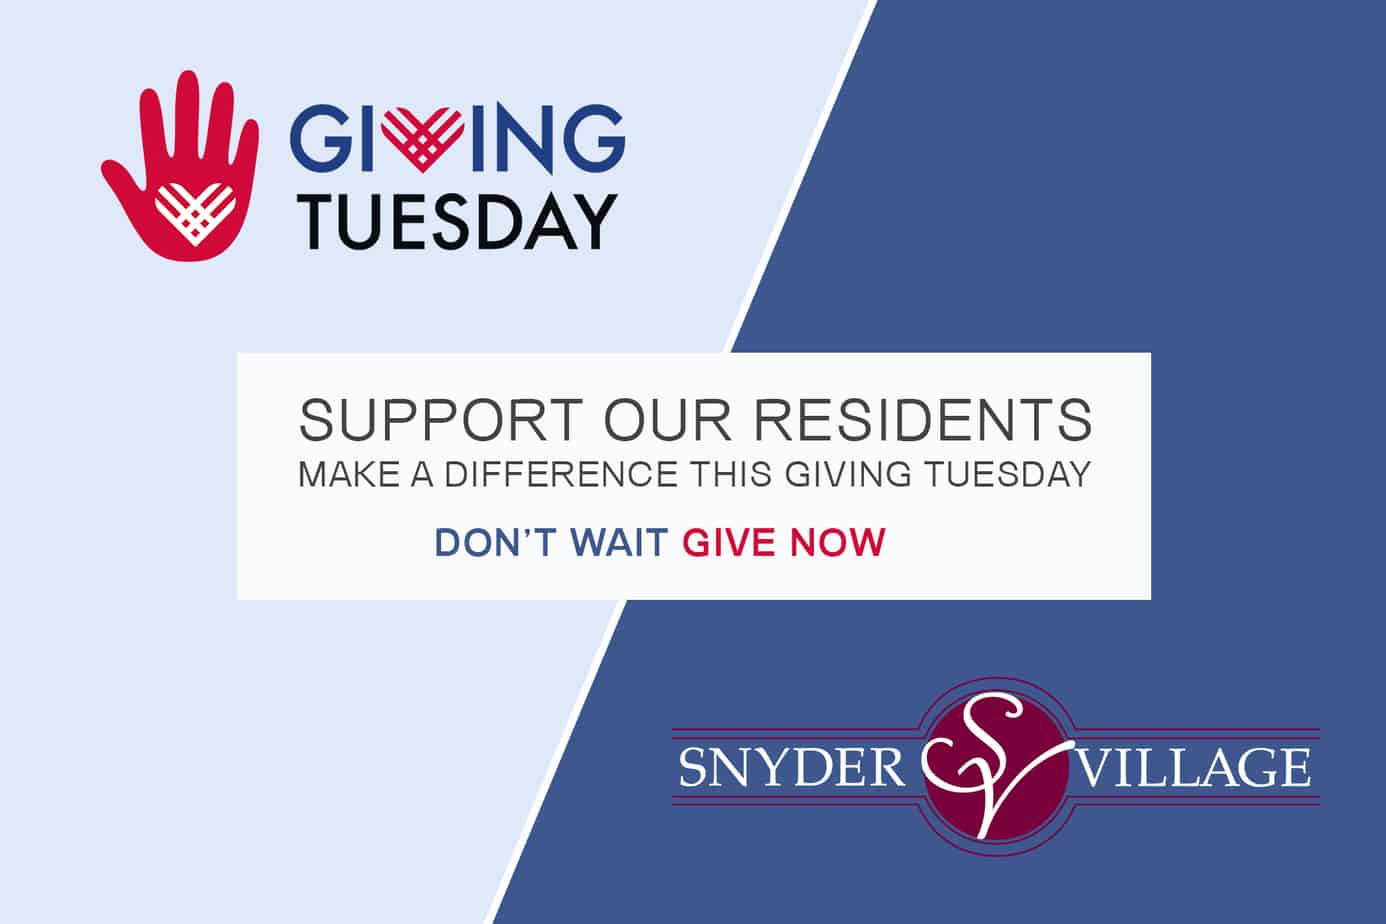 Snyder Village to Celebrate Giving Tuesday